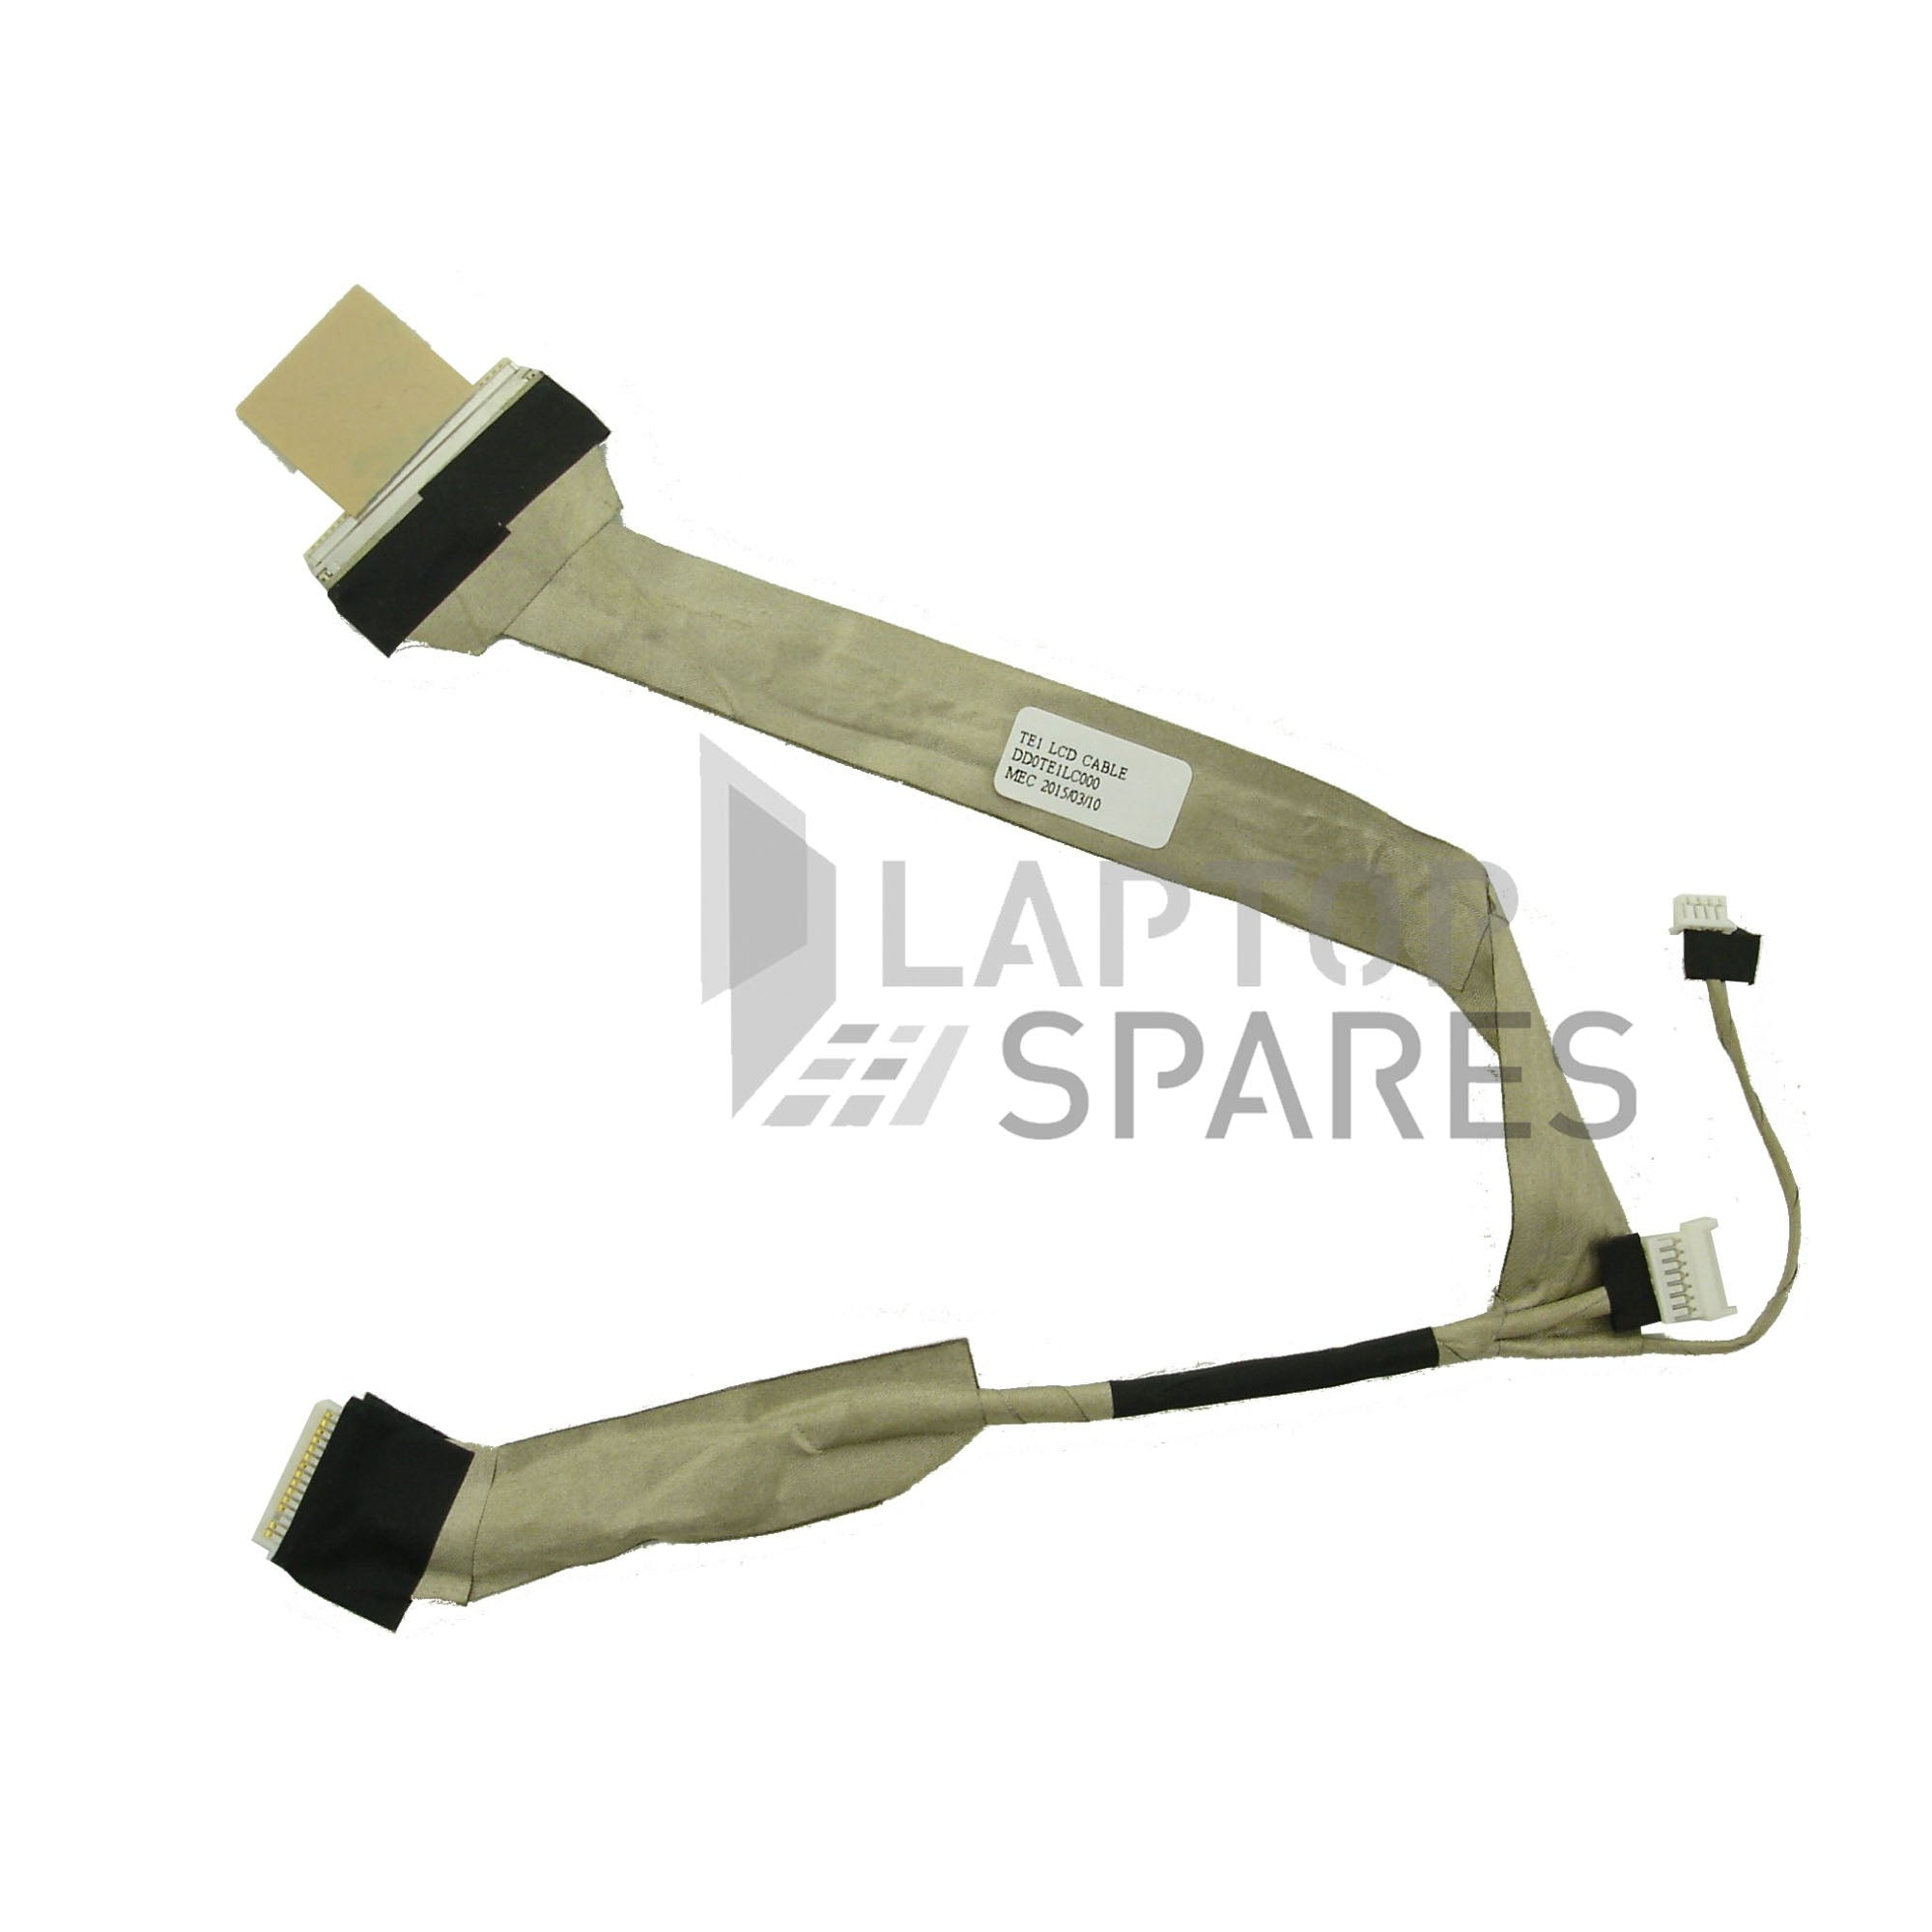 Toshiba Satellite M305 M331 M336 LAPTOP LCD LED LVDS Cable